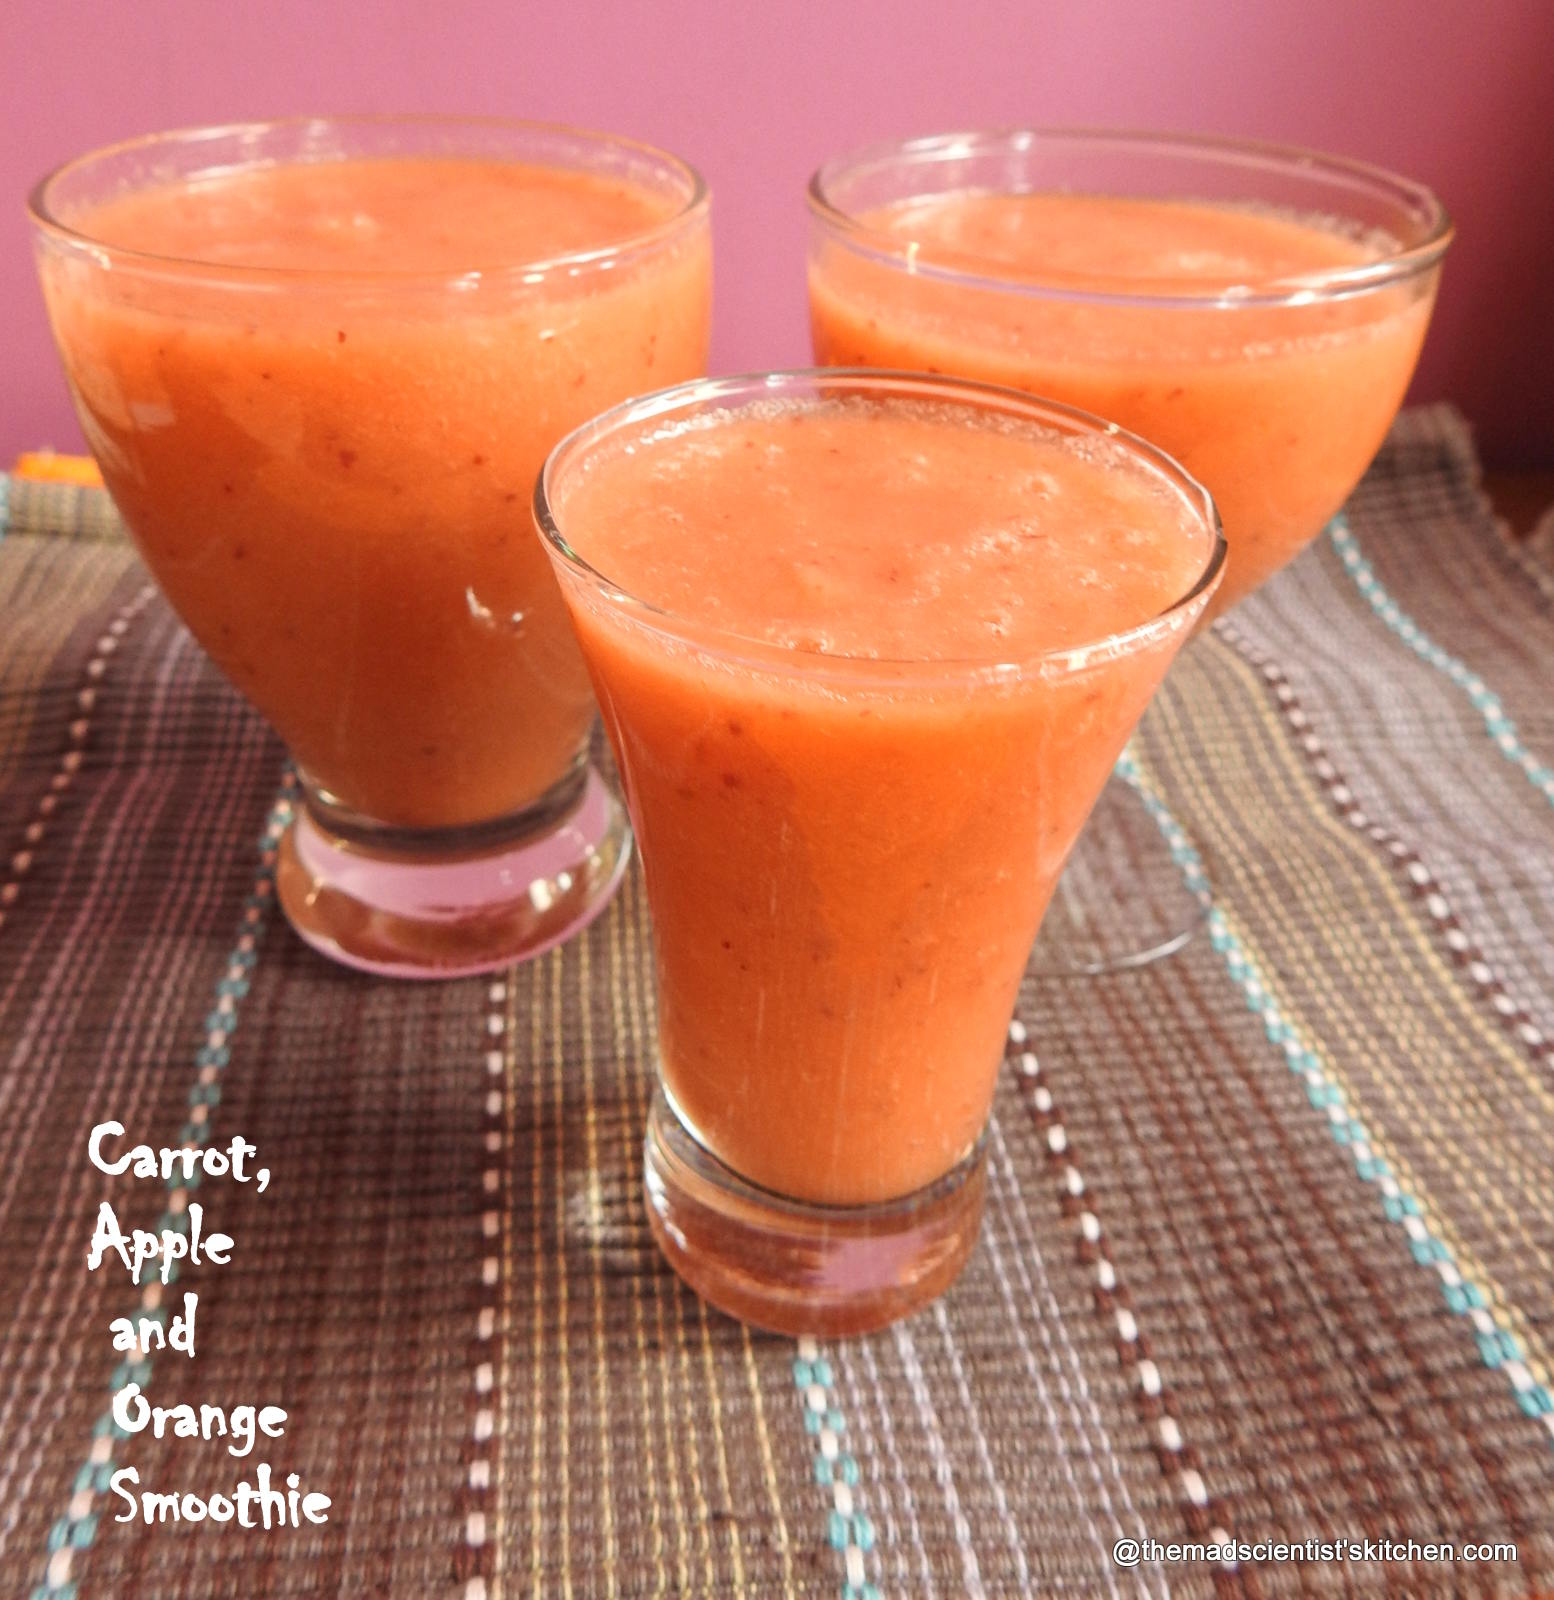 Carrot, Apple and Orange Smoothie